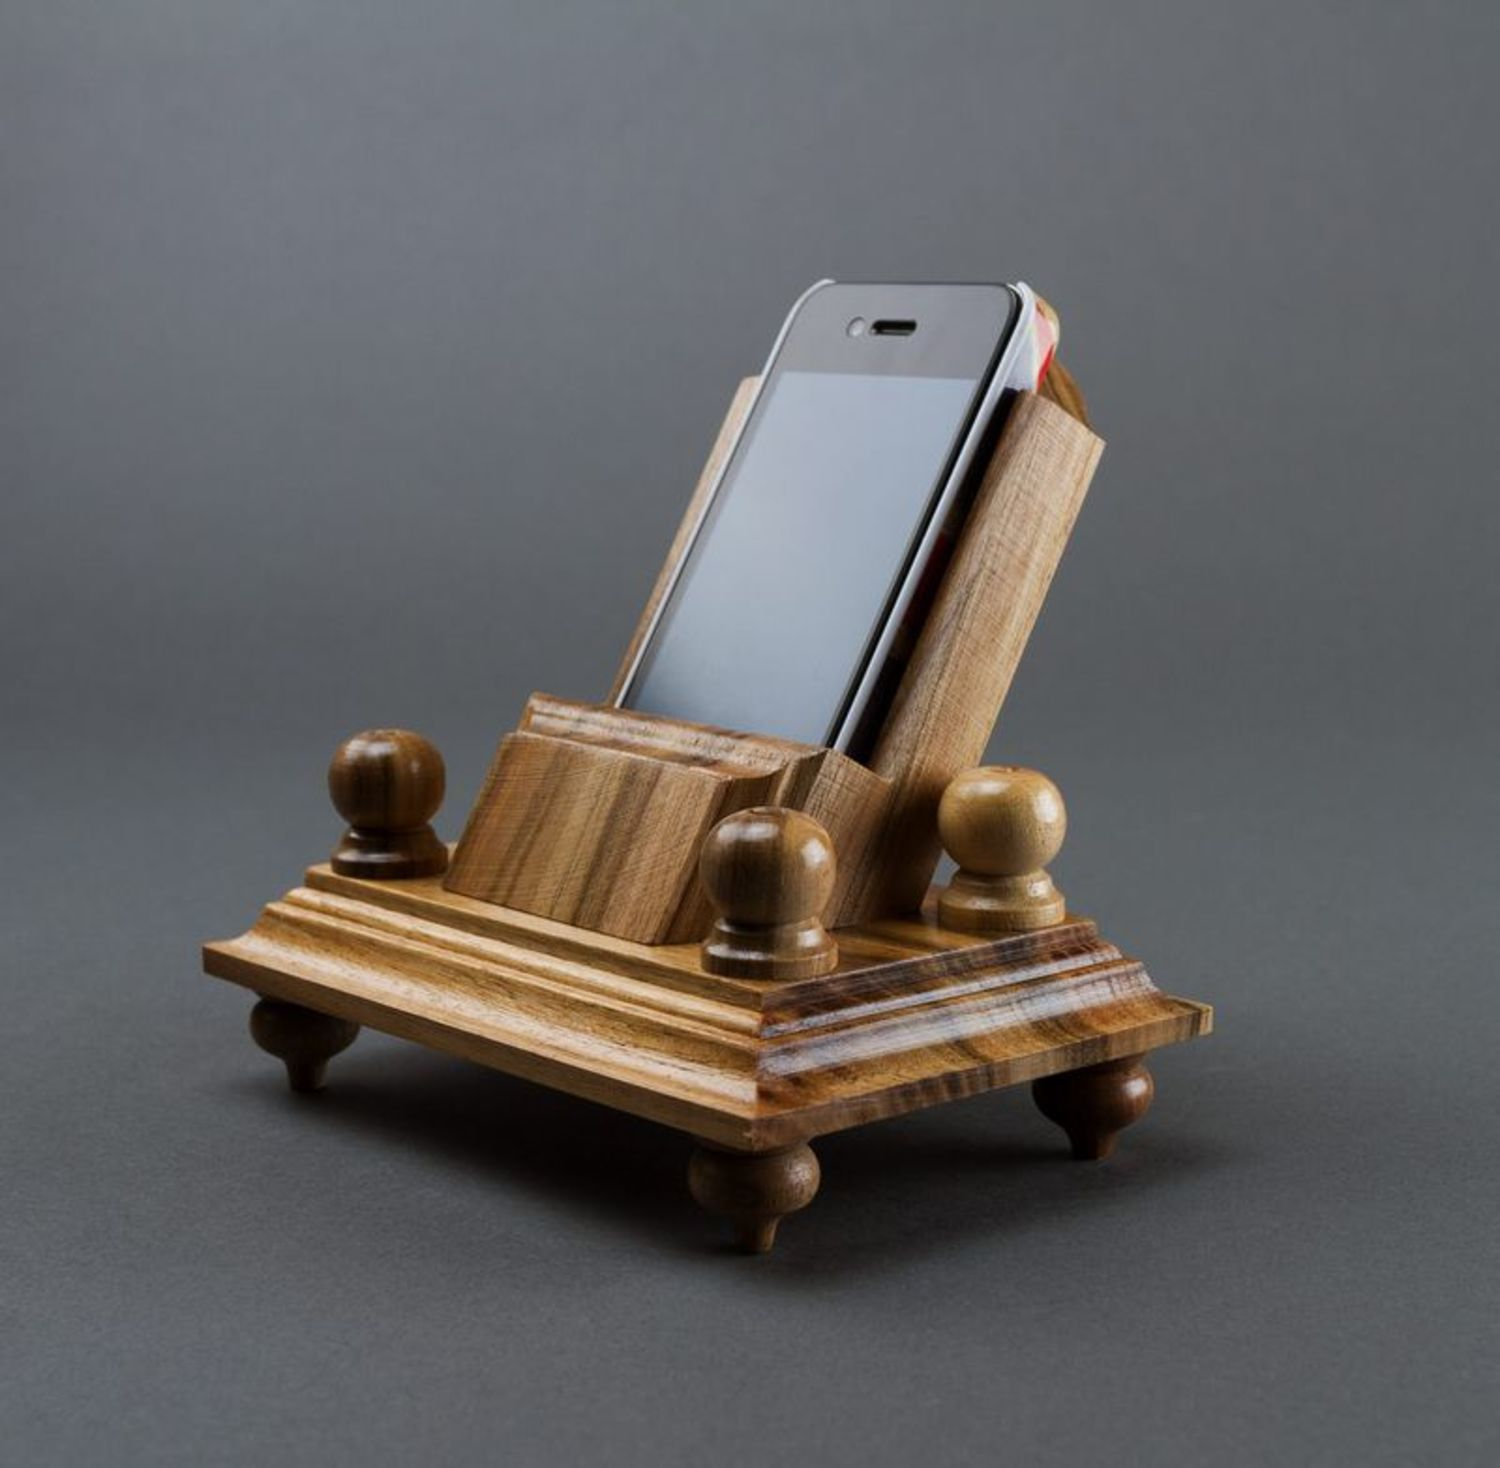 Wooden phone stand photo 1